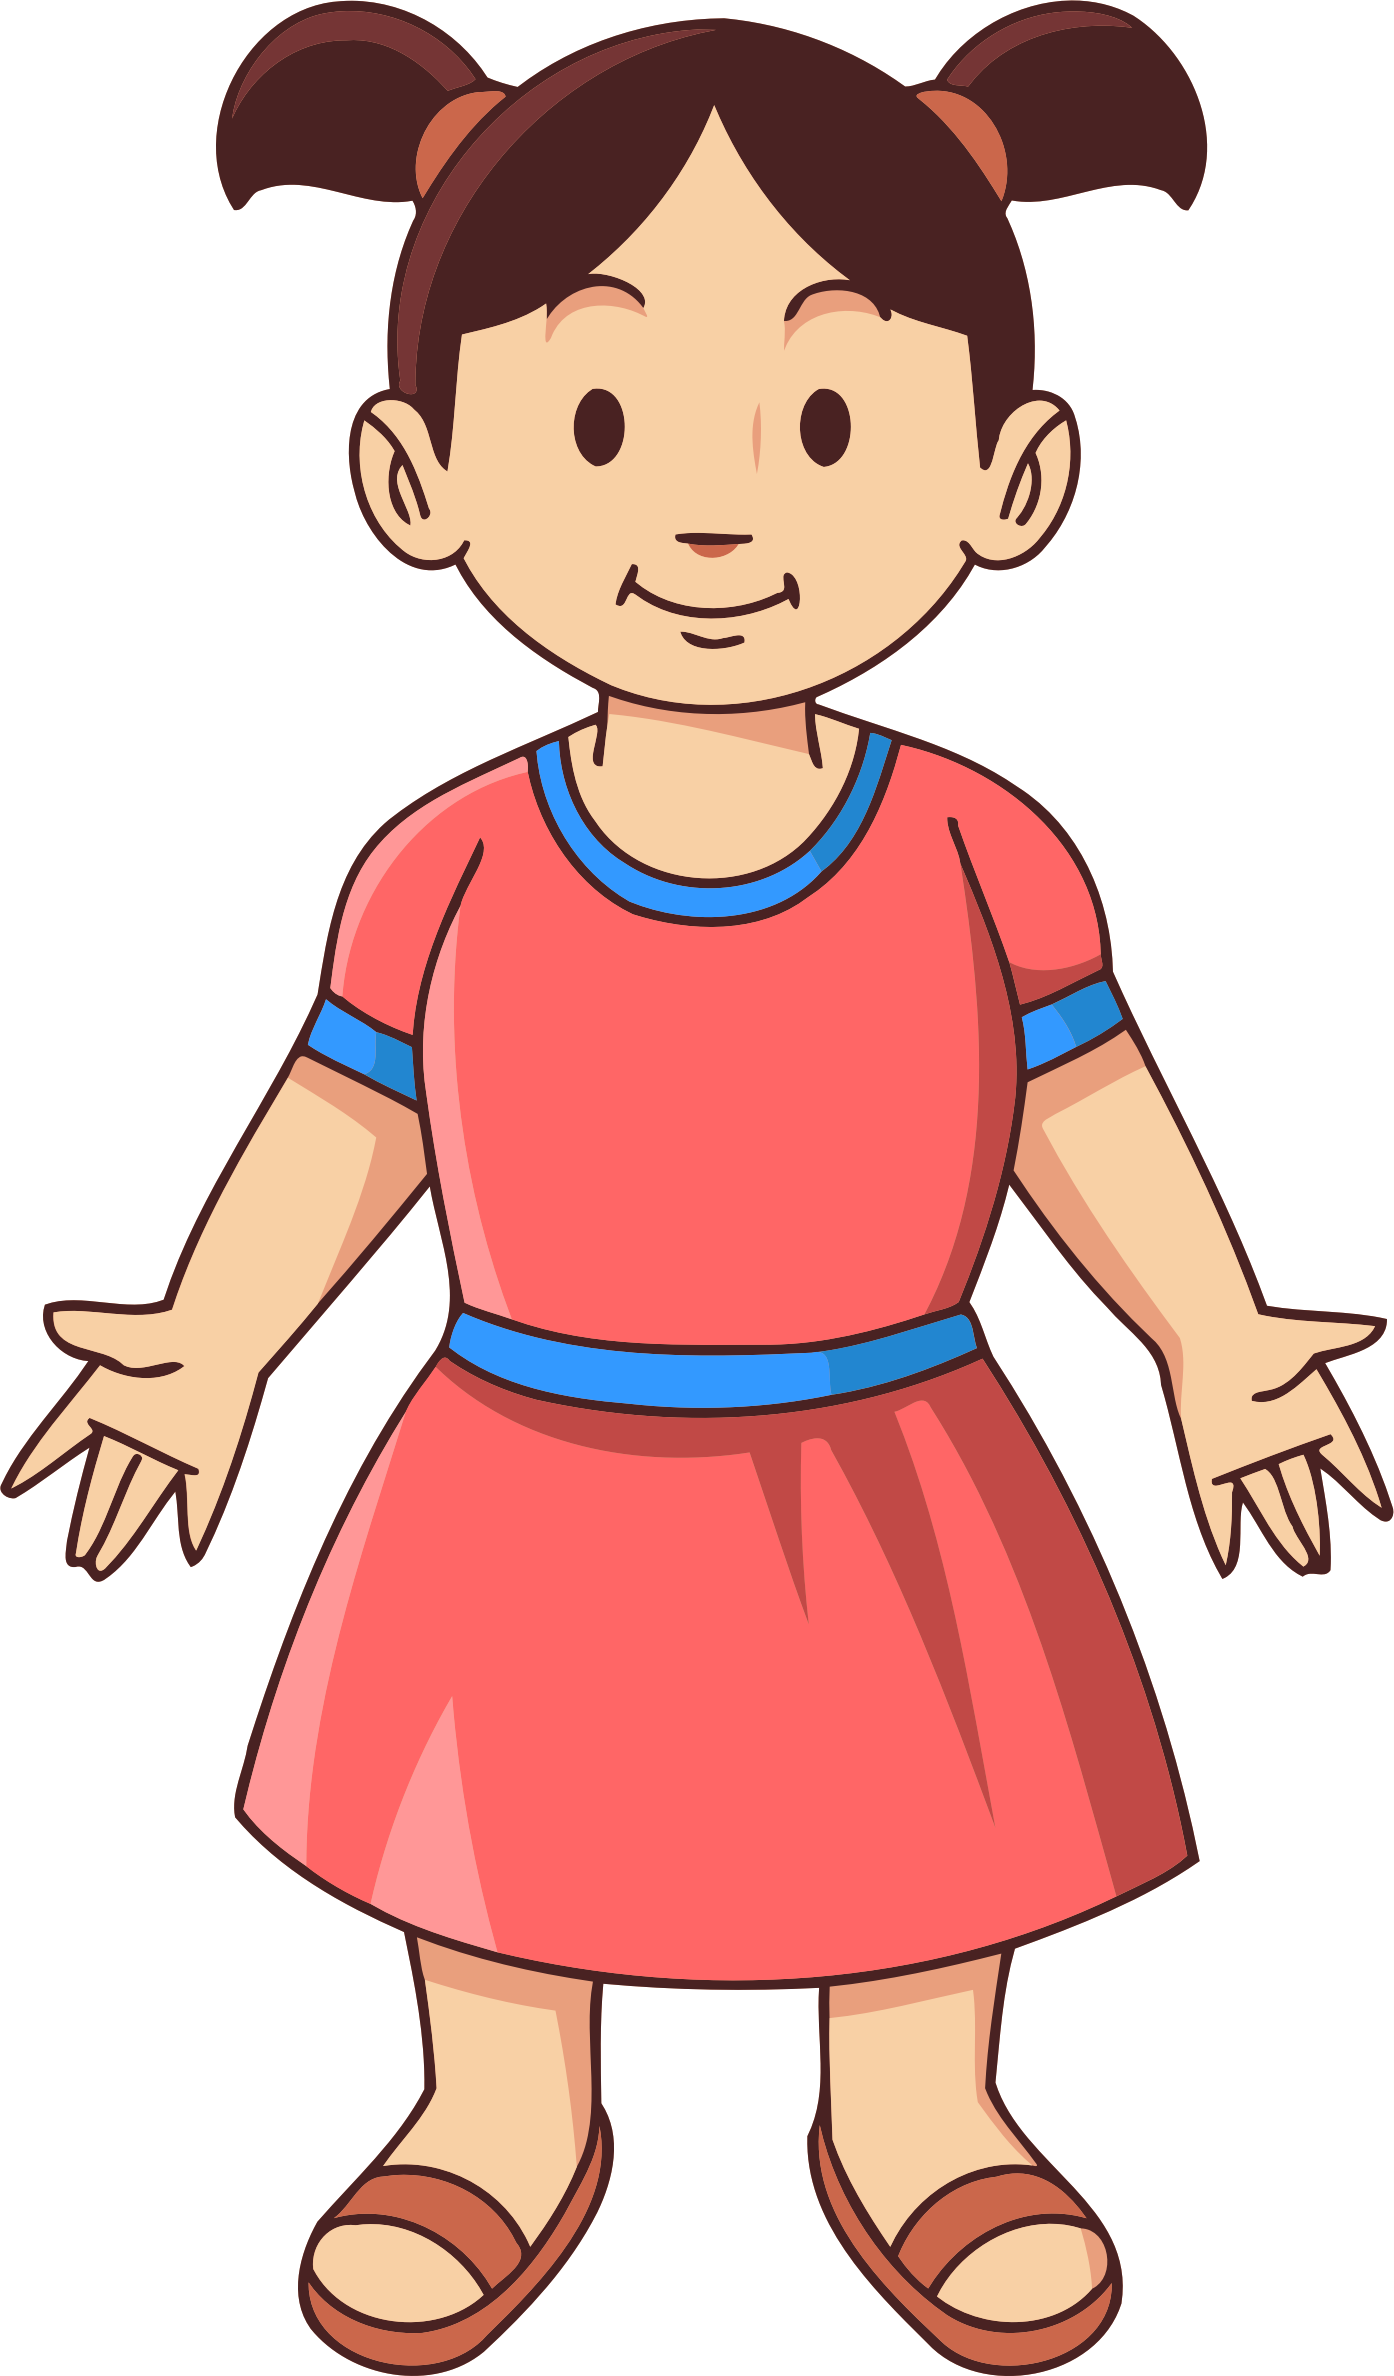 Girl clipart kid. Child big image png